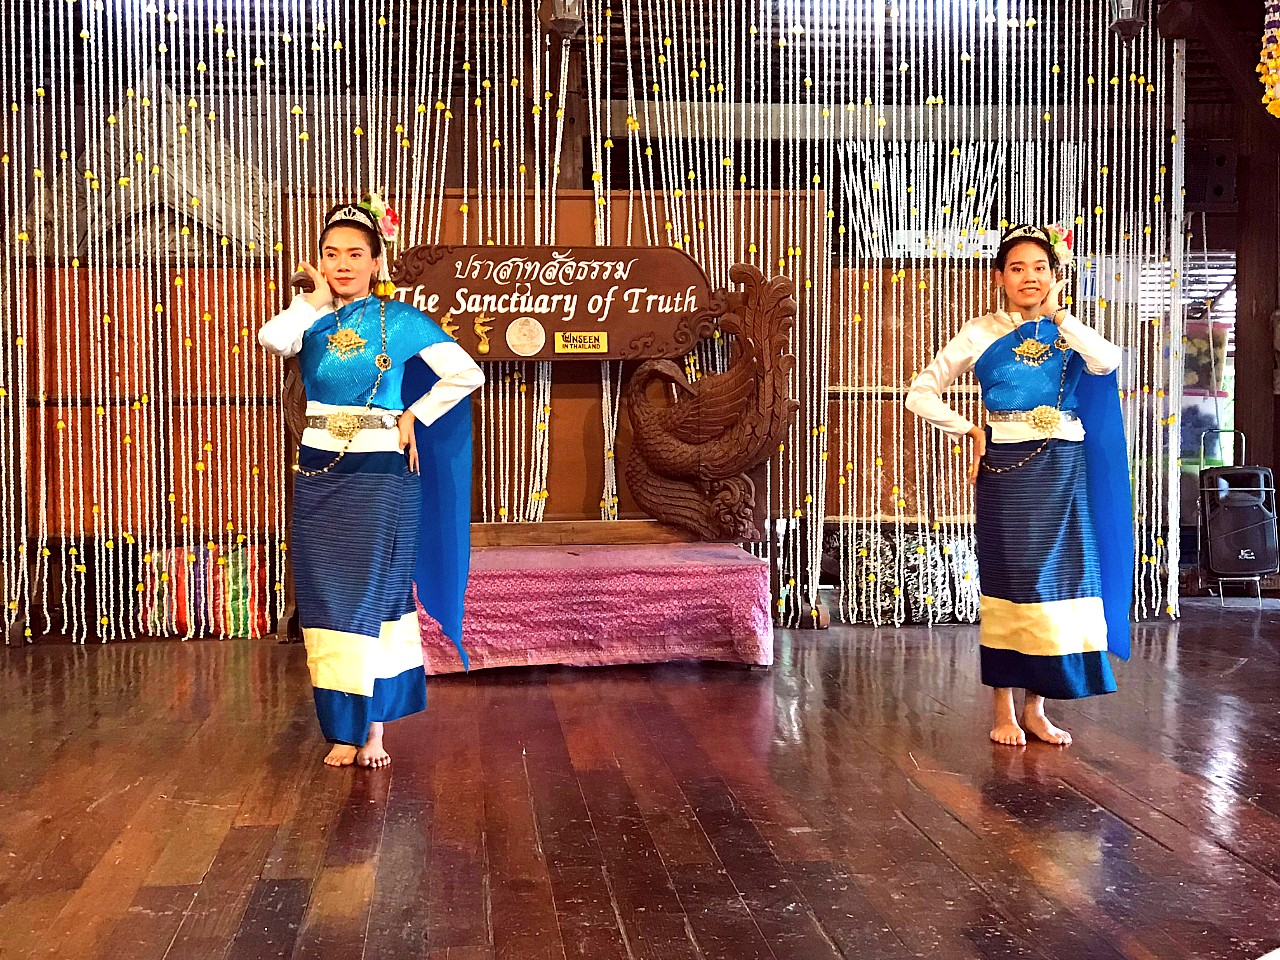 The Sanctuary of truth Thai Traditional Dance